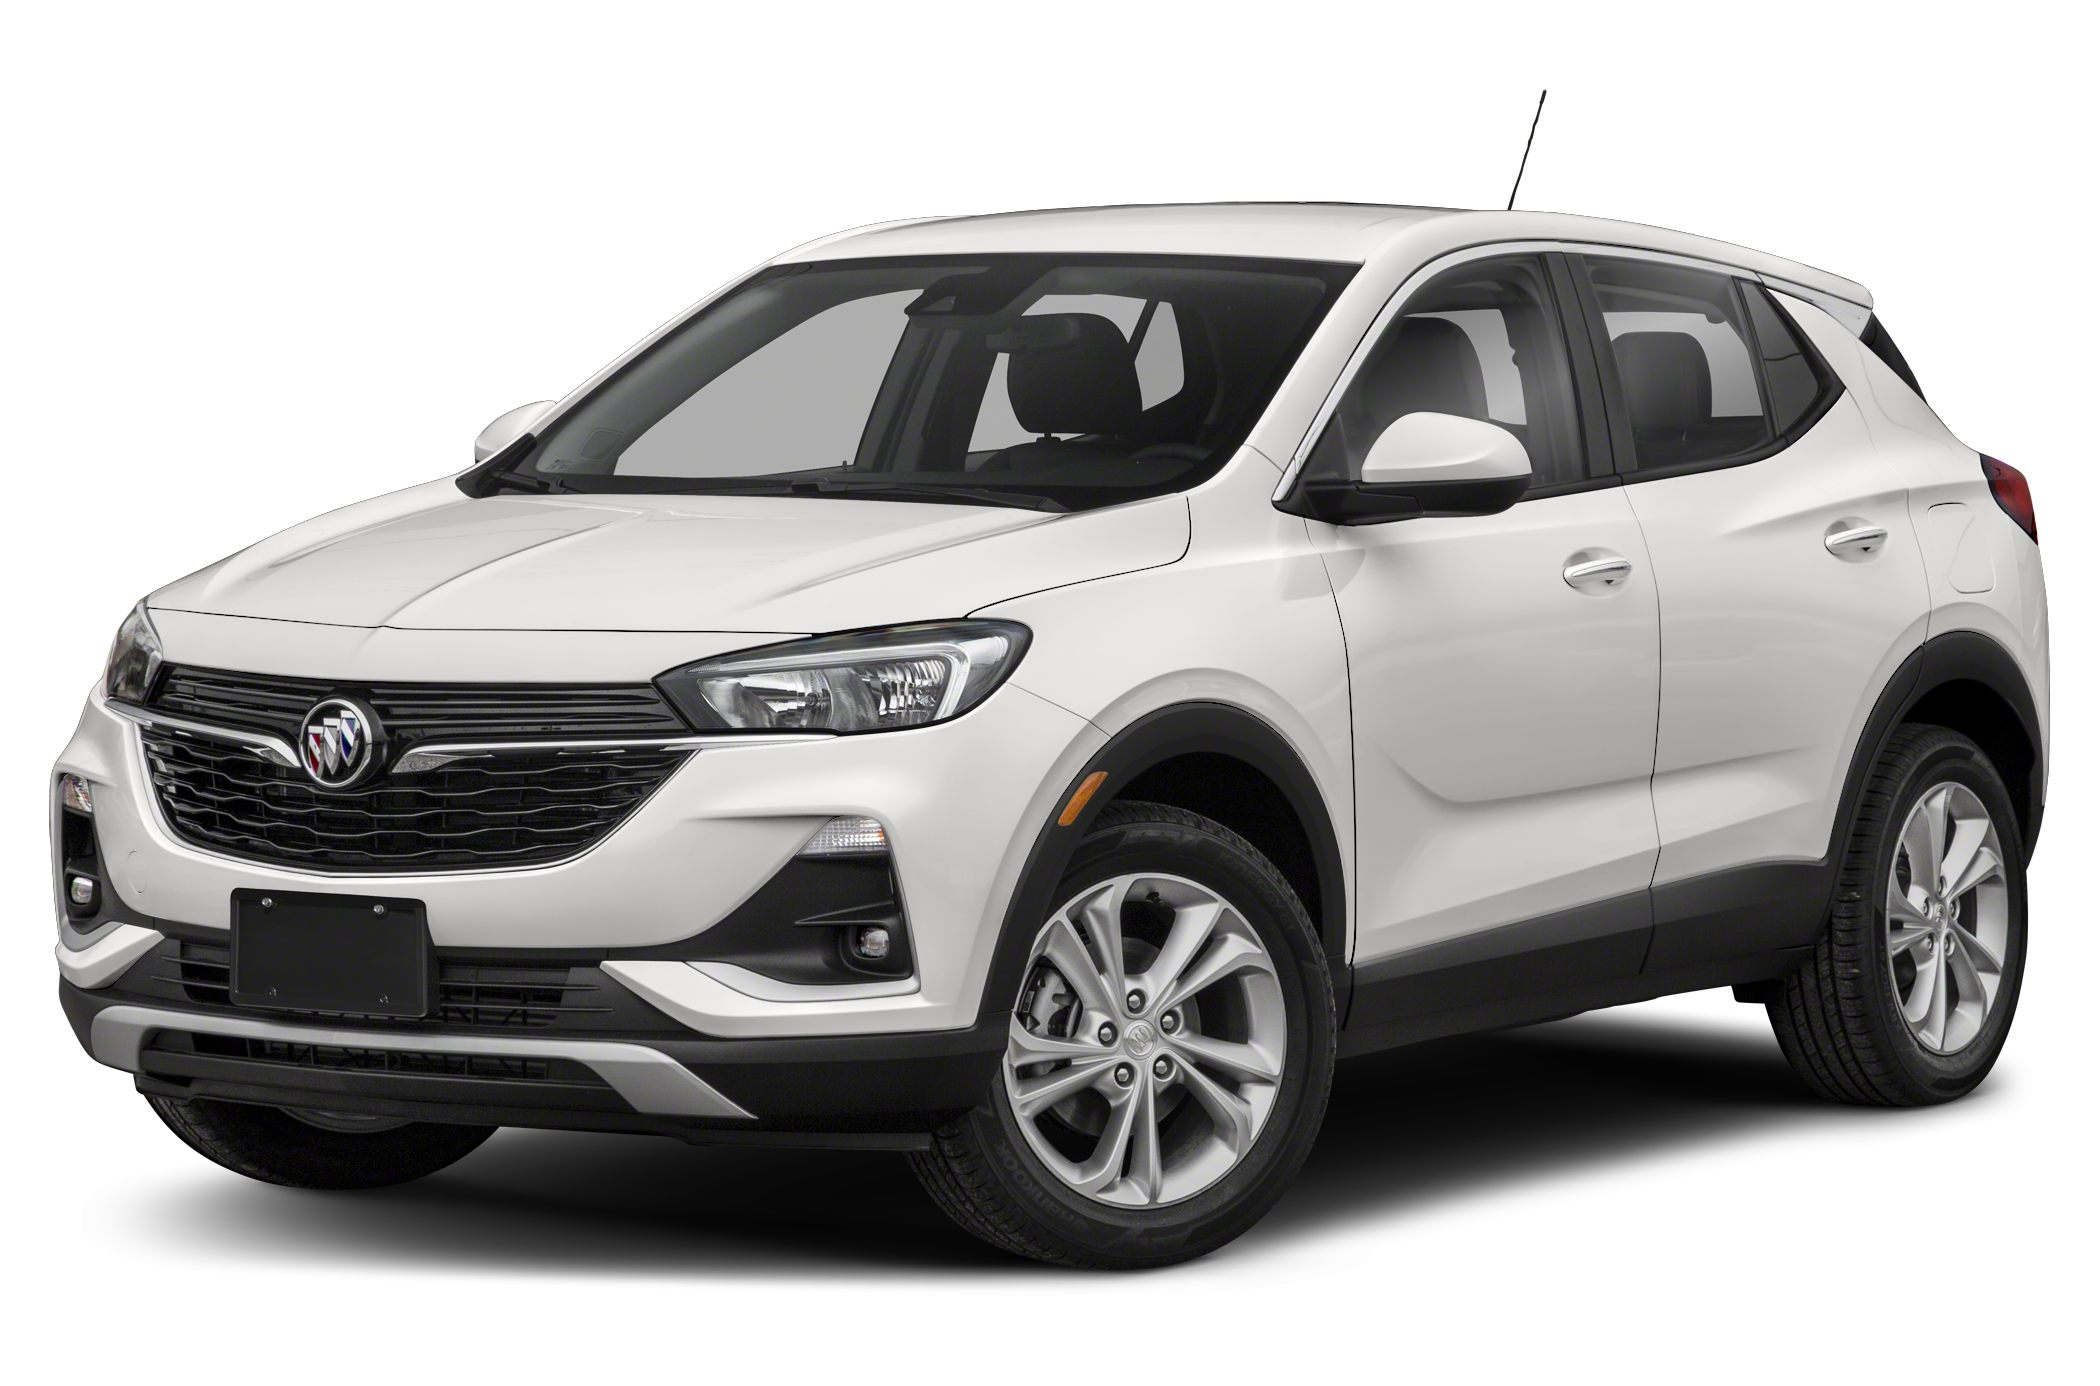 2021 Buick Encore Gx Specs And Prices What Does A 2021 Buick Encore Cost